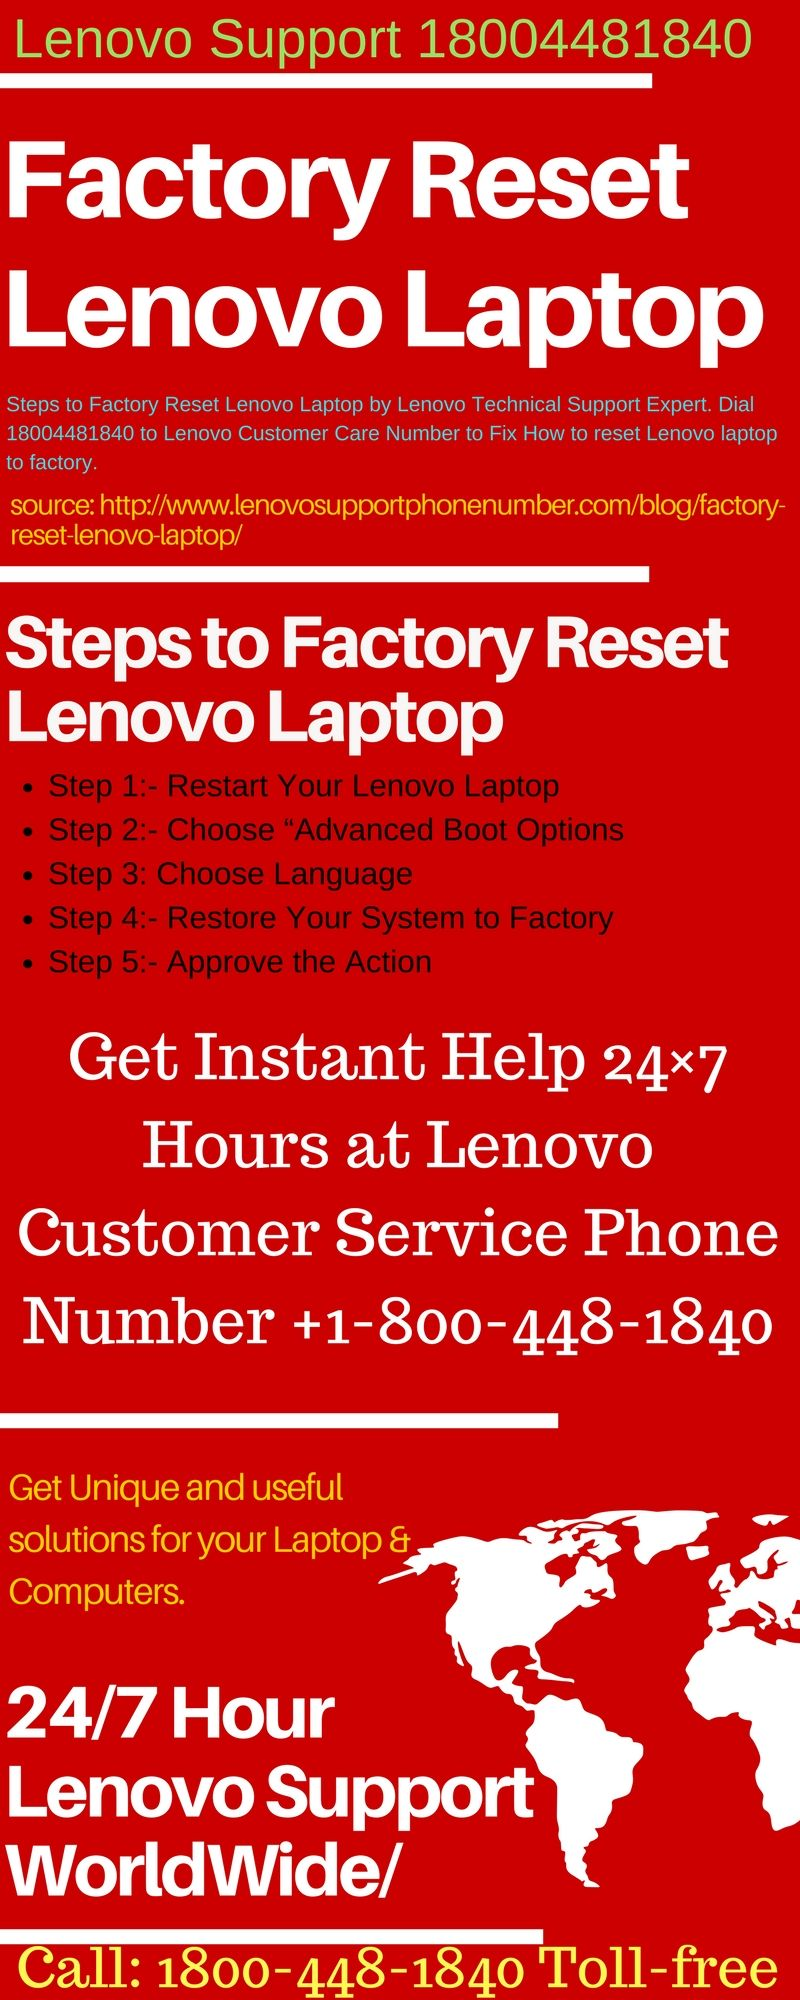 how to access lenovo laptop without password